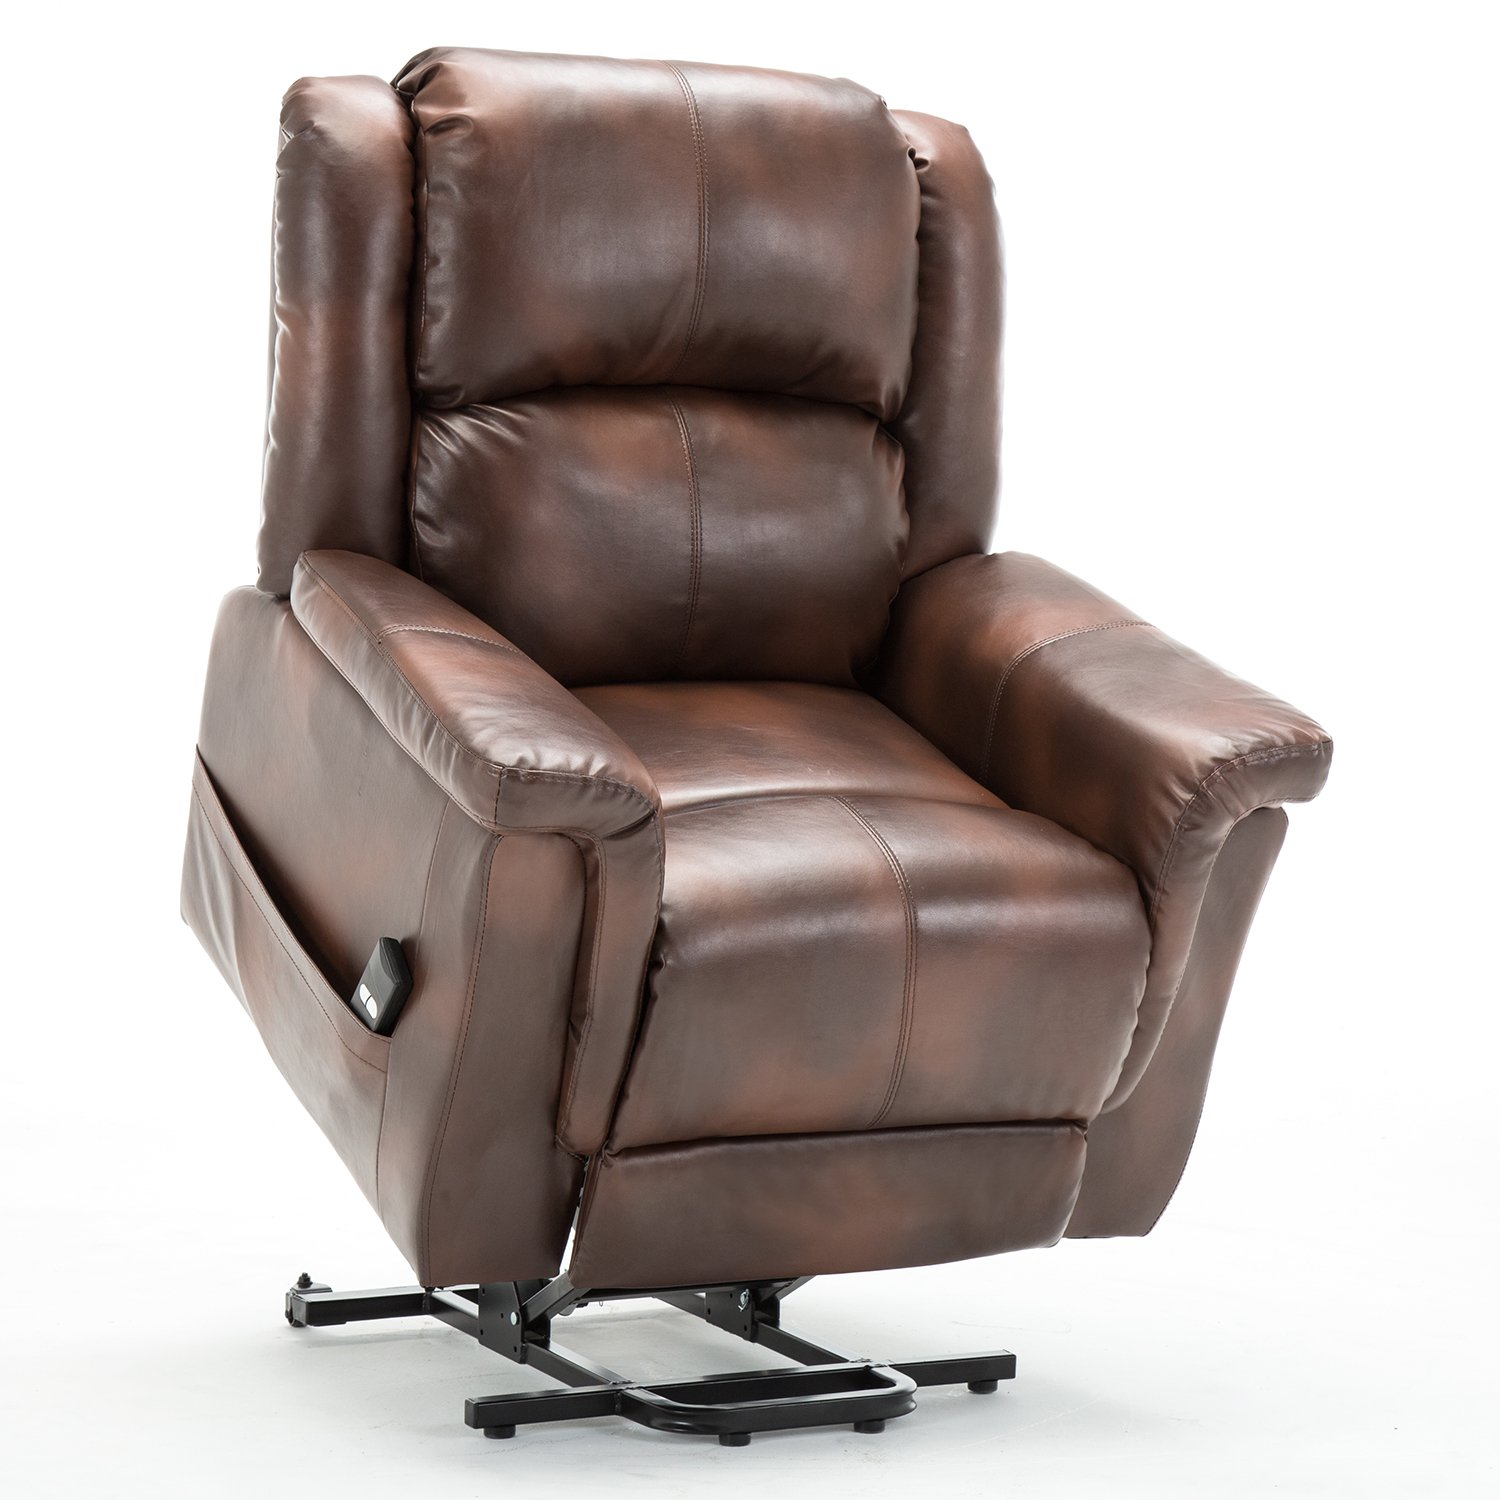 ComHoma Power Lift Recliner Chair with Heated Massage Electric Lounge Living Room Sofa Luxurious Bonded Leather Easy Care for Elderly with Remote(BROWN)